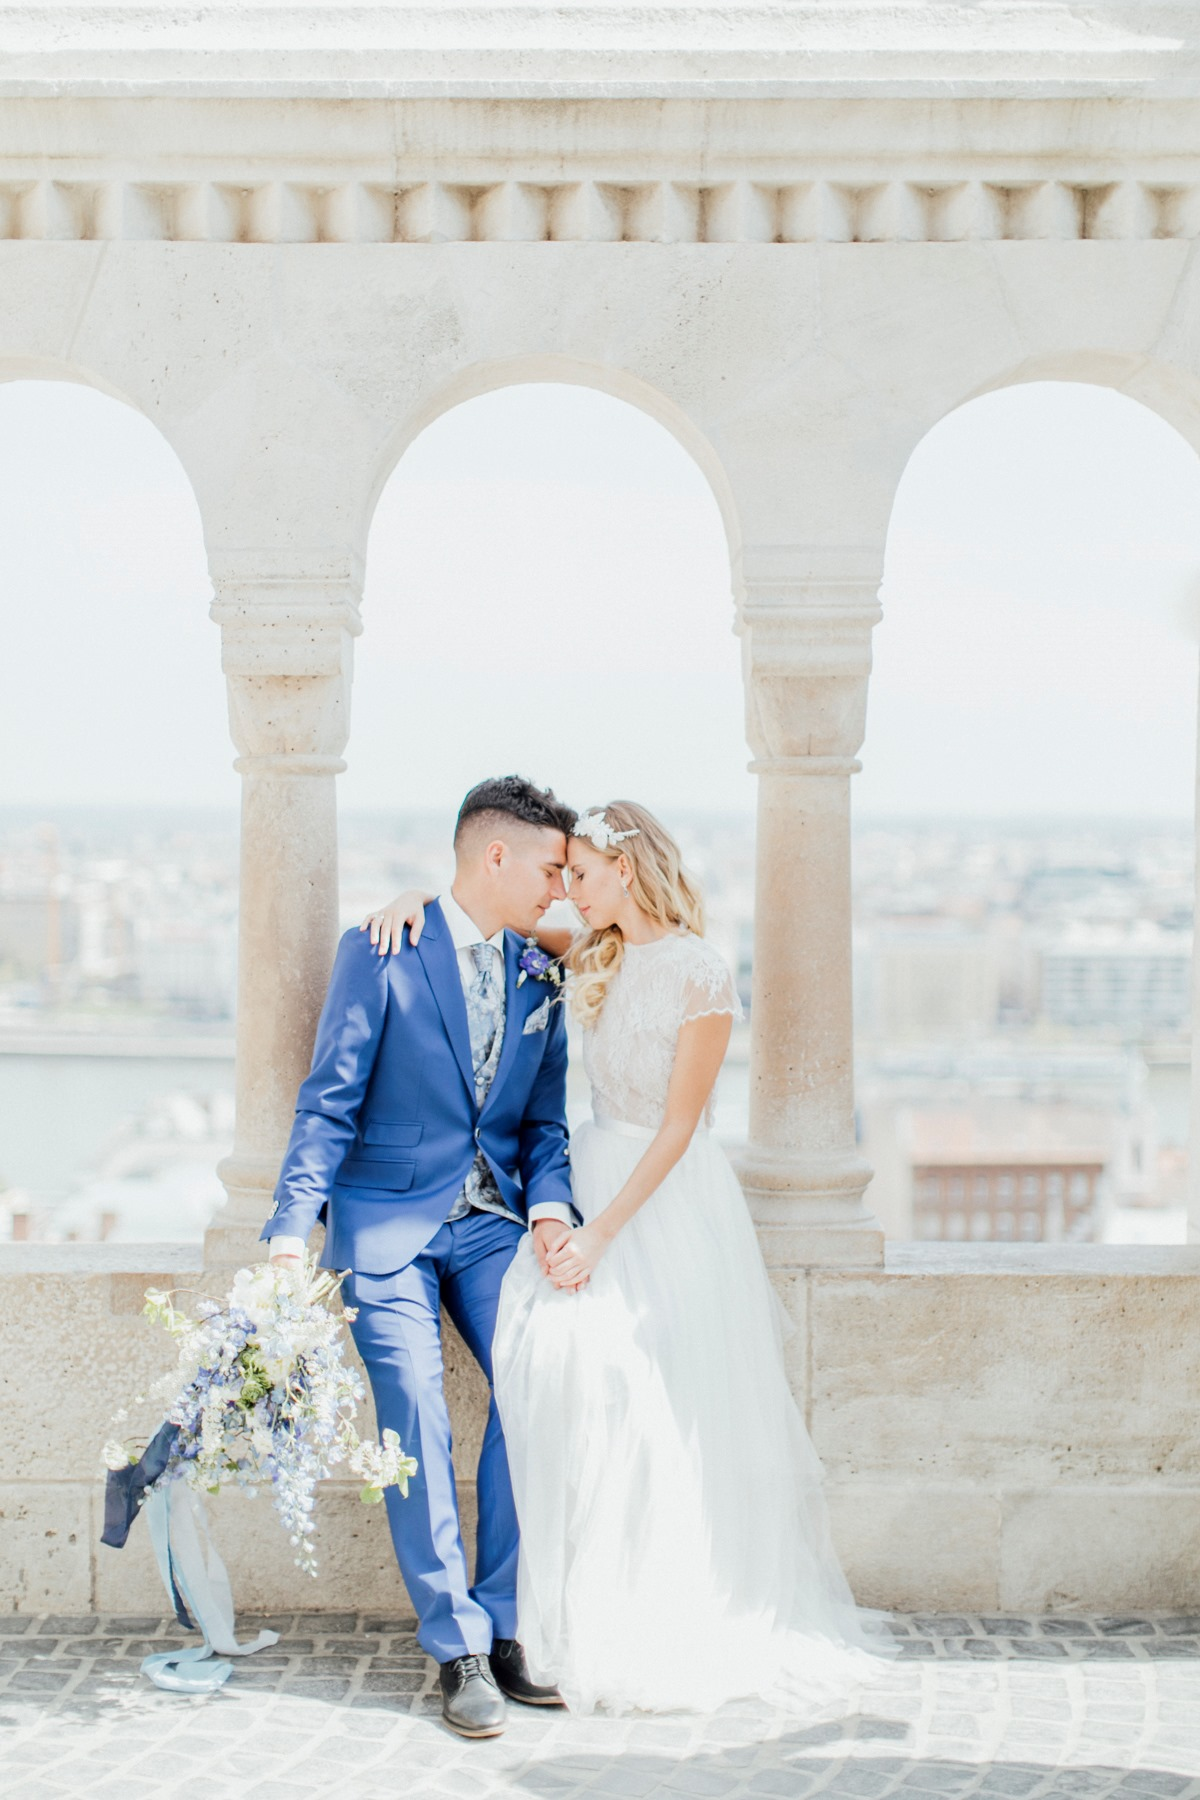 Light and airy Budapest wedding